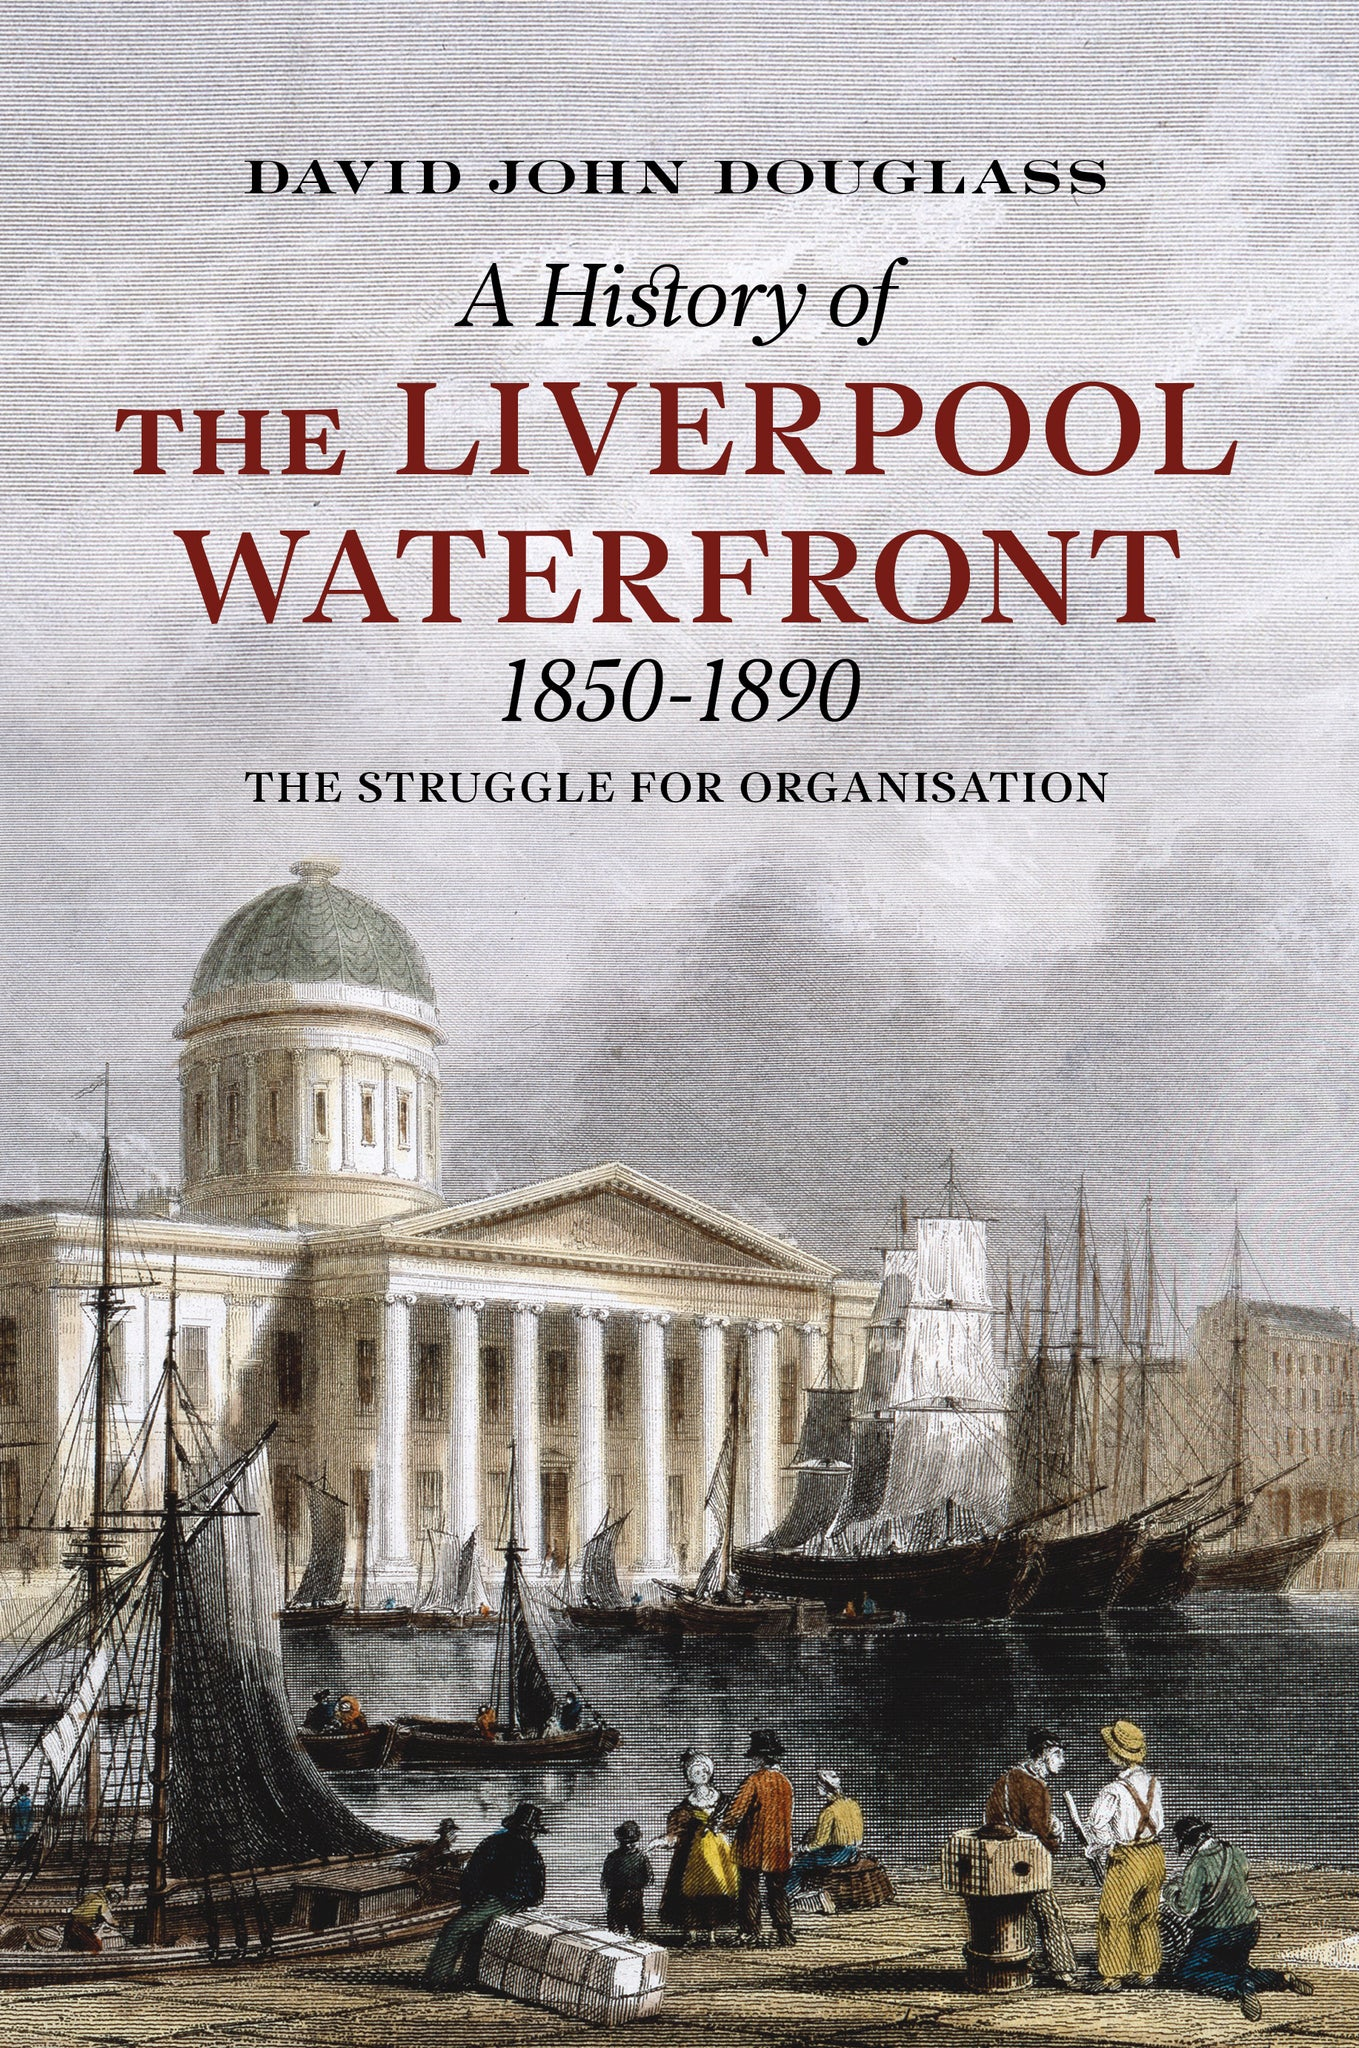 A History of the Liverpool Waterfront 1850-1890: The Struggle for Organisation - available from Fonthill Media